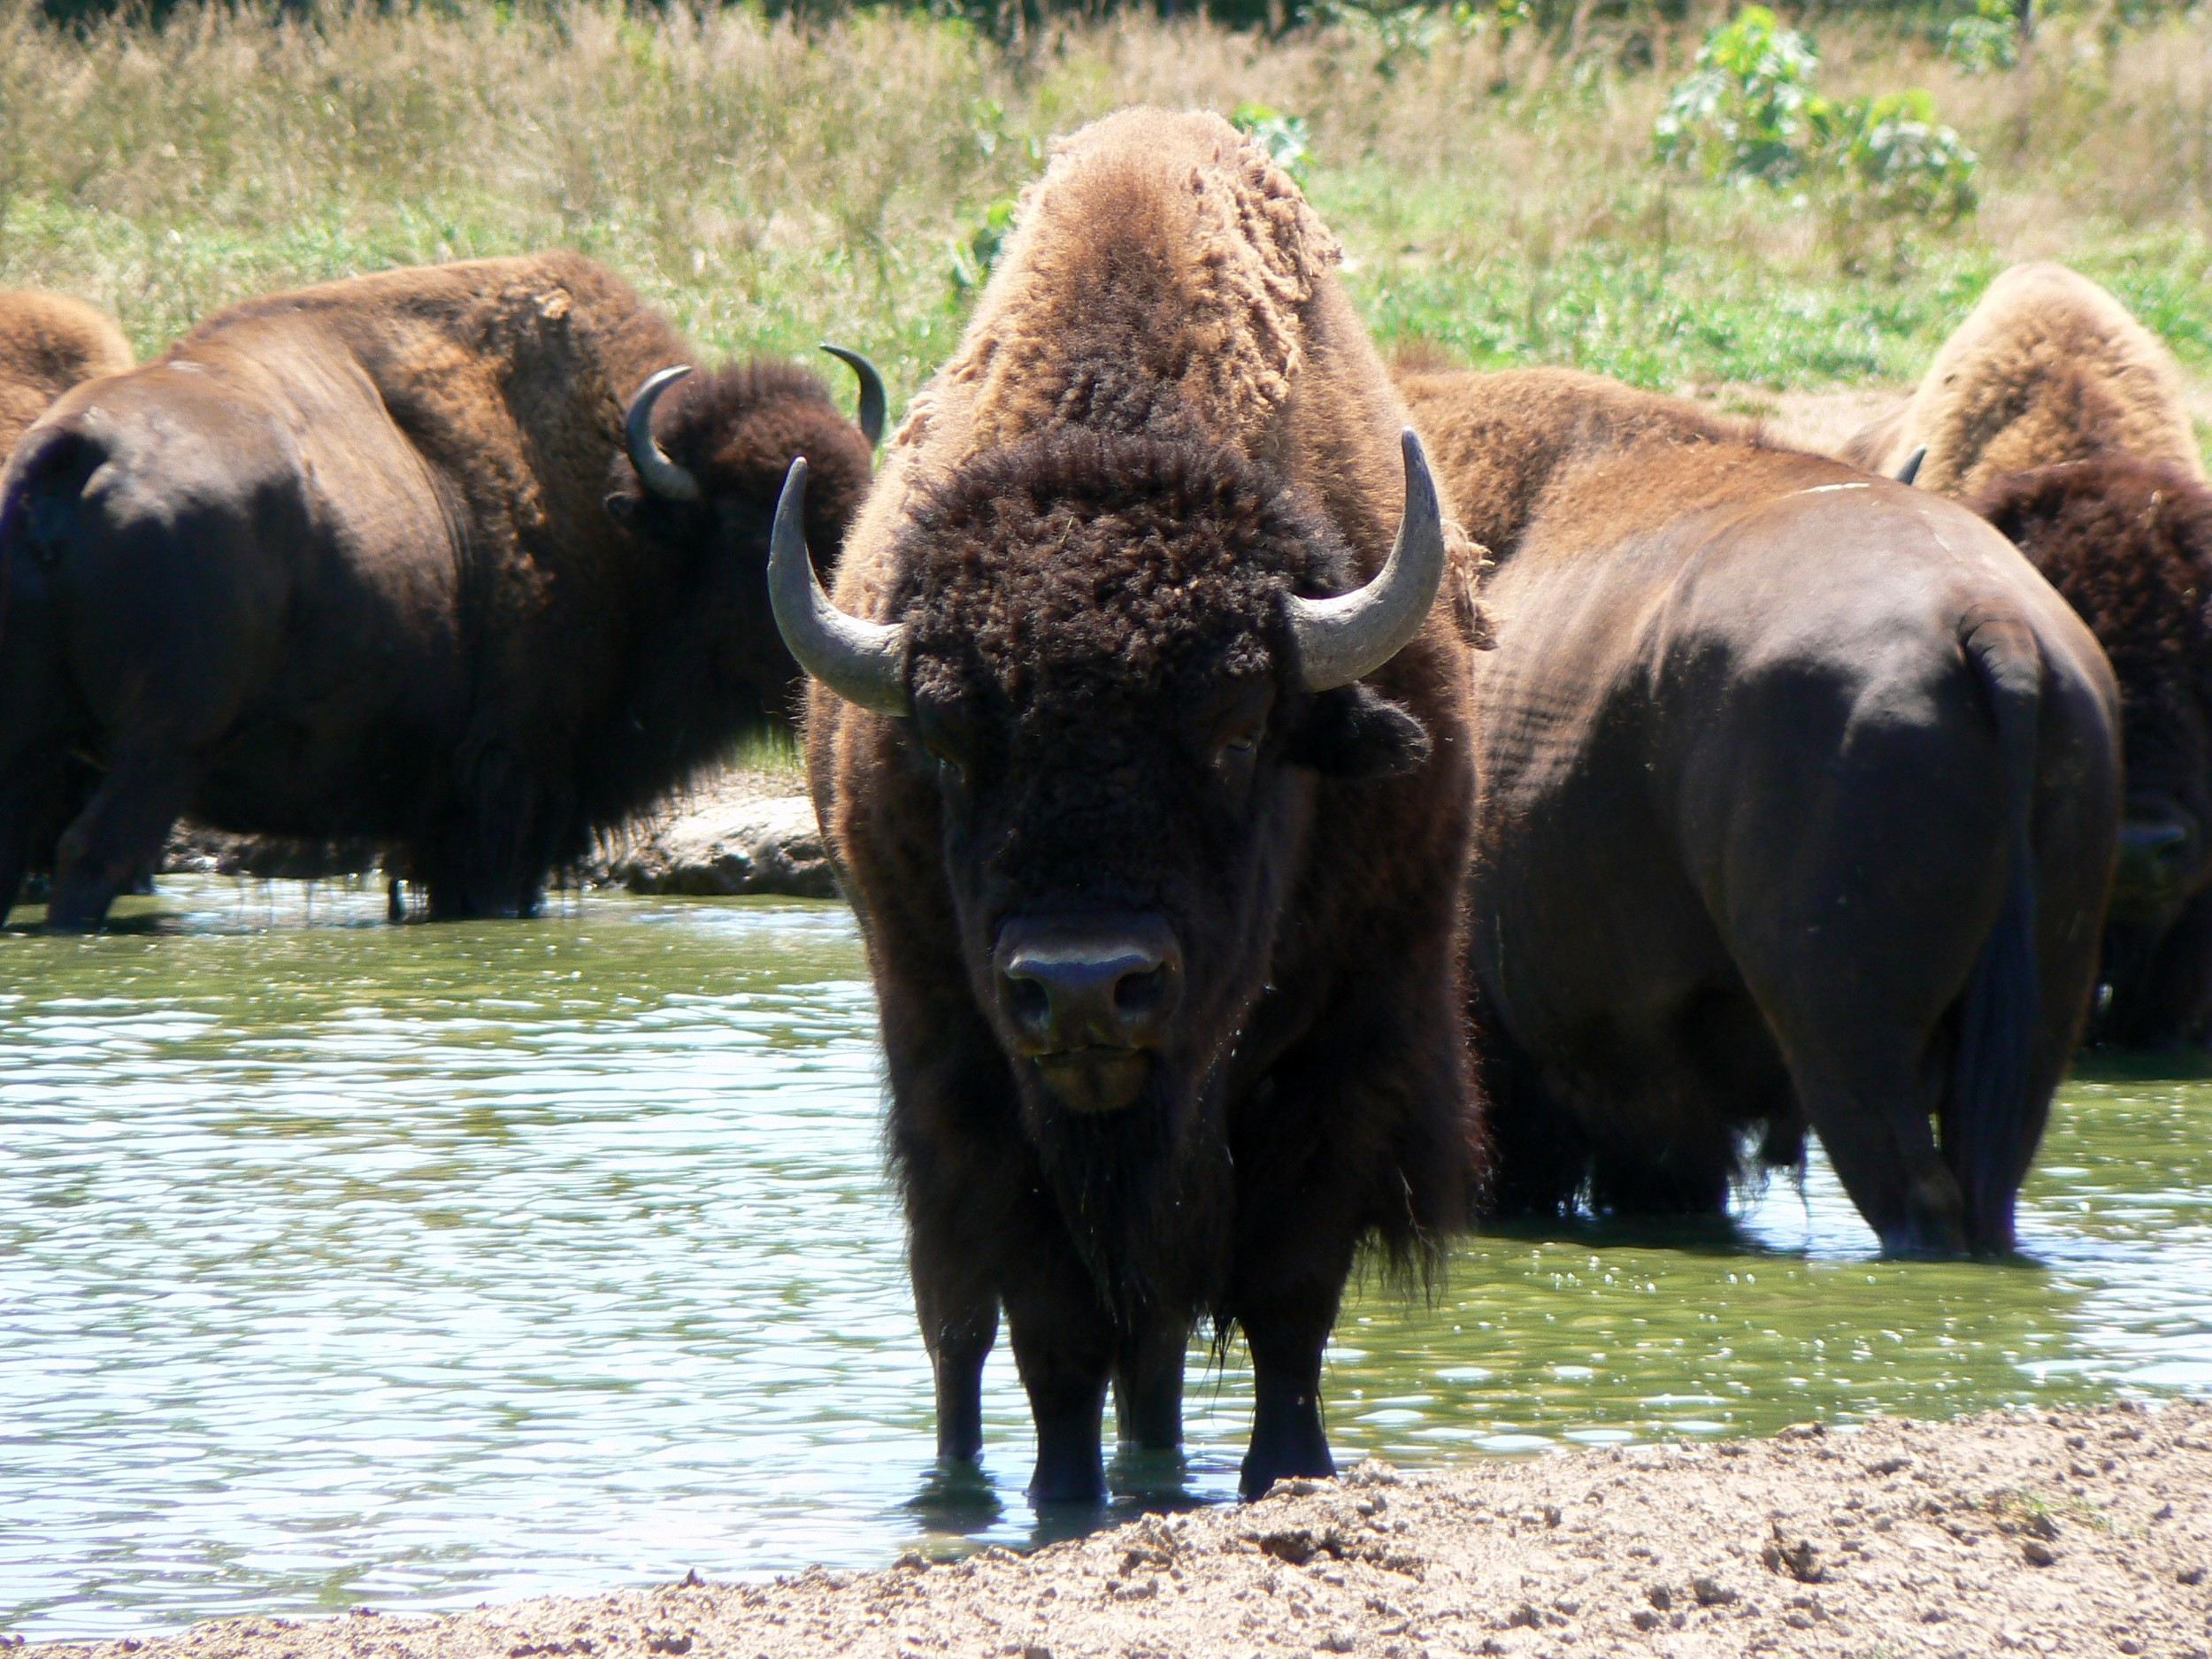 Like the Bison, we don't plan on leaving South Dakota any time soon.